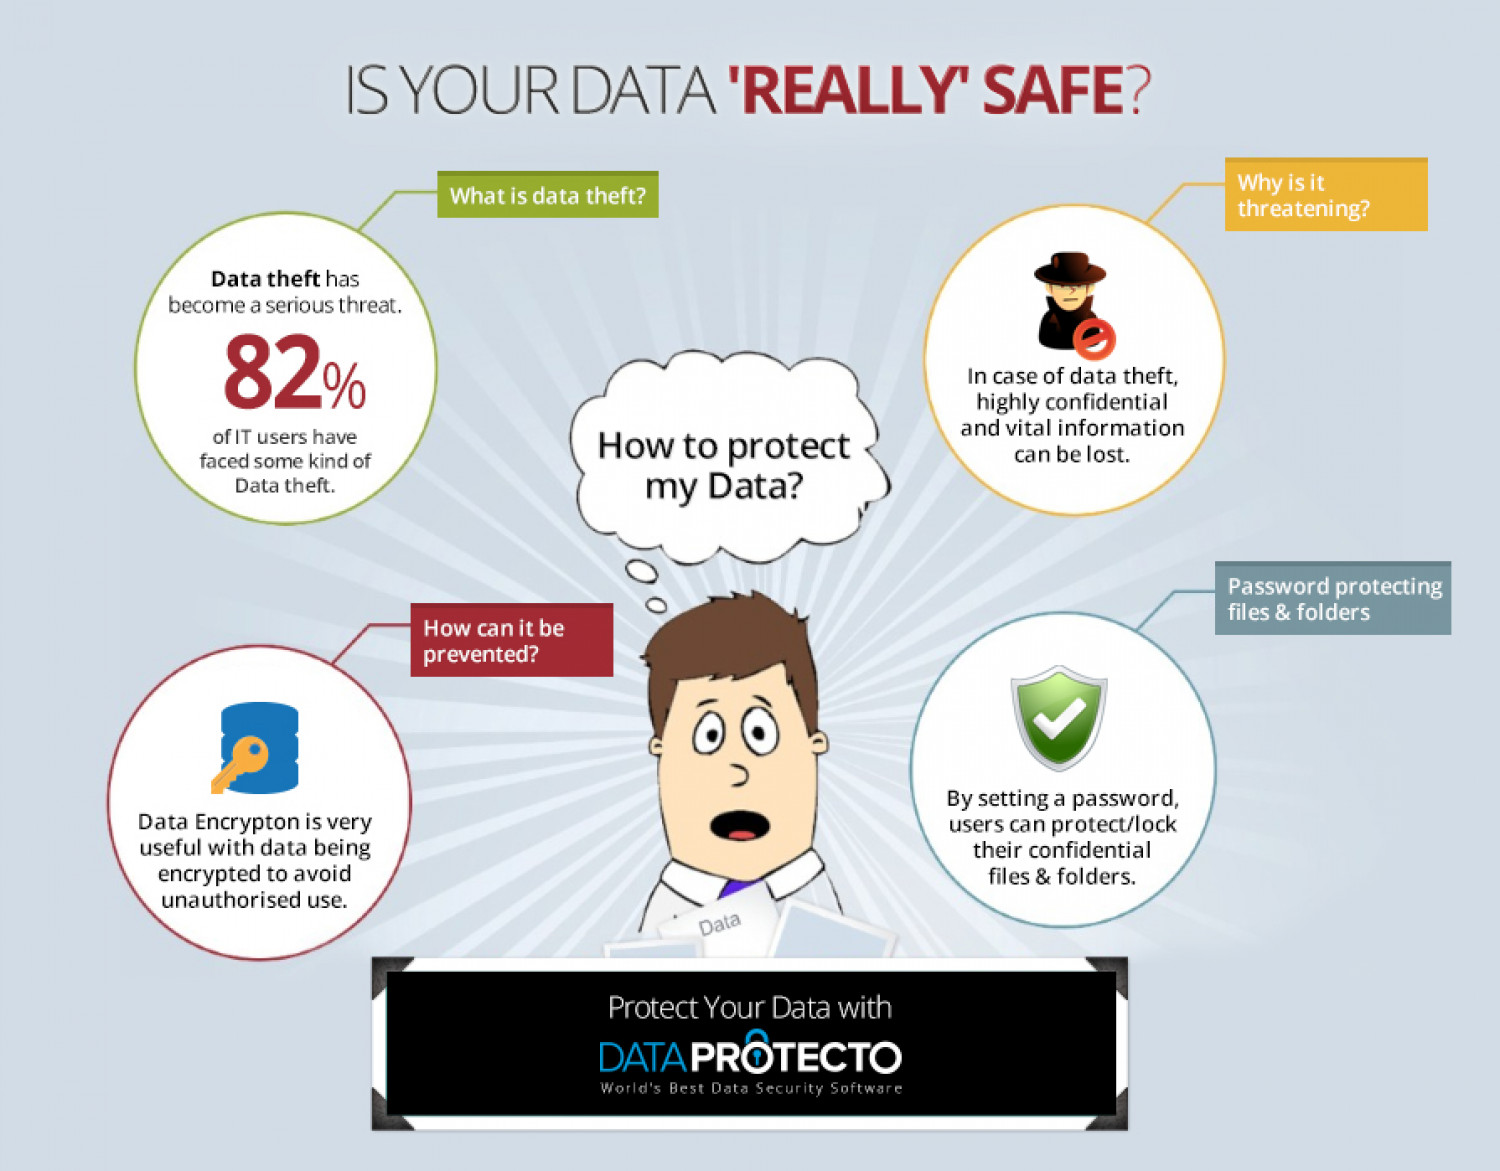 Is Your Data Really Safe? Infographic